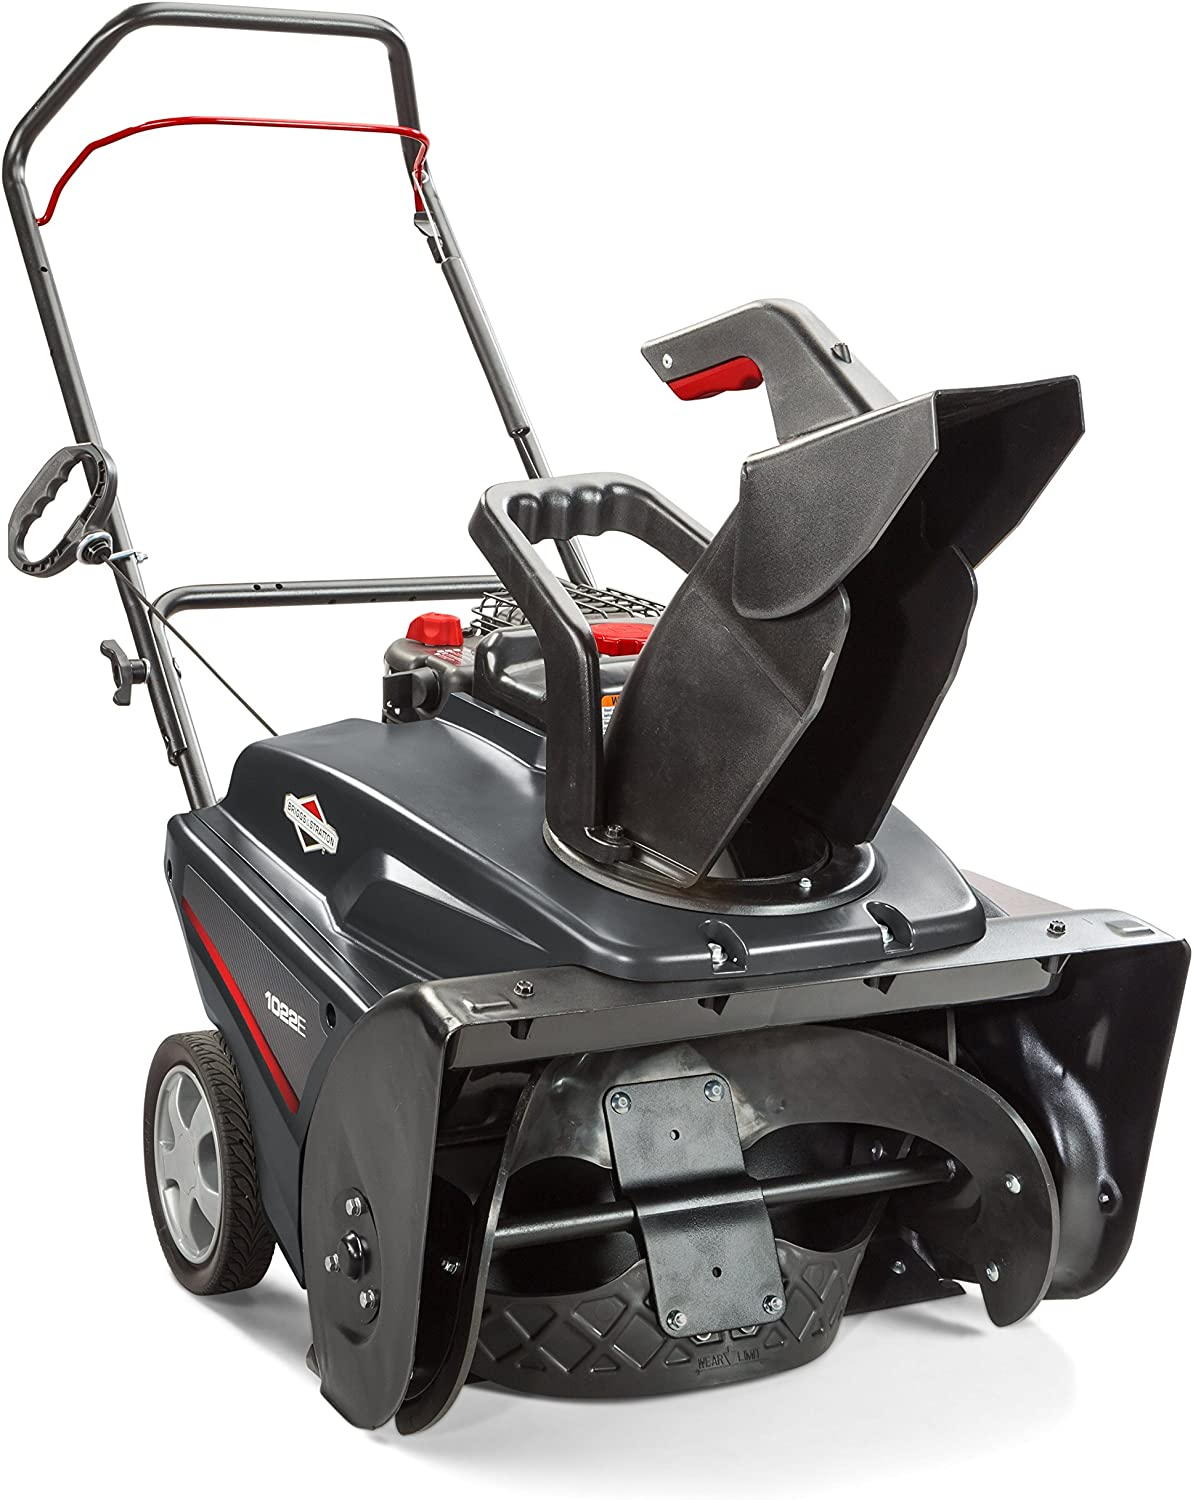 Briggs Stratton 1696737 Single Stage Snow Thrower with 208cc Engine, 22